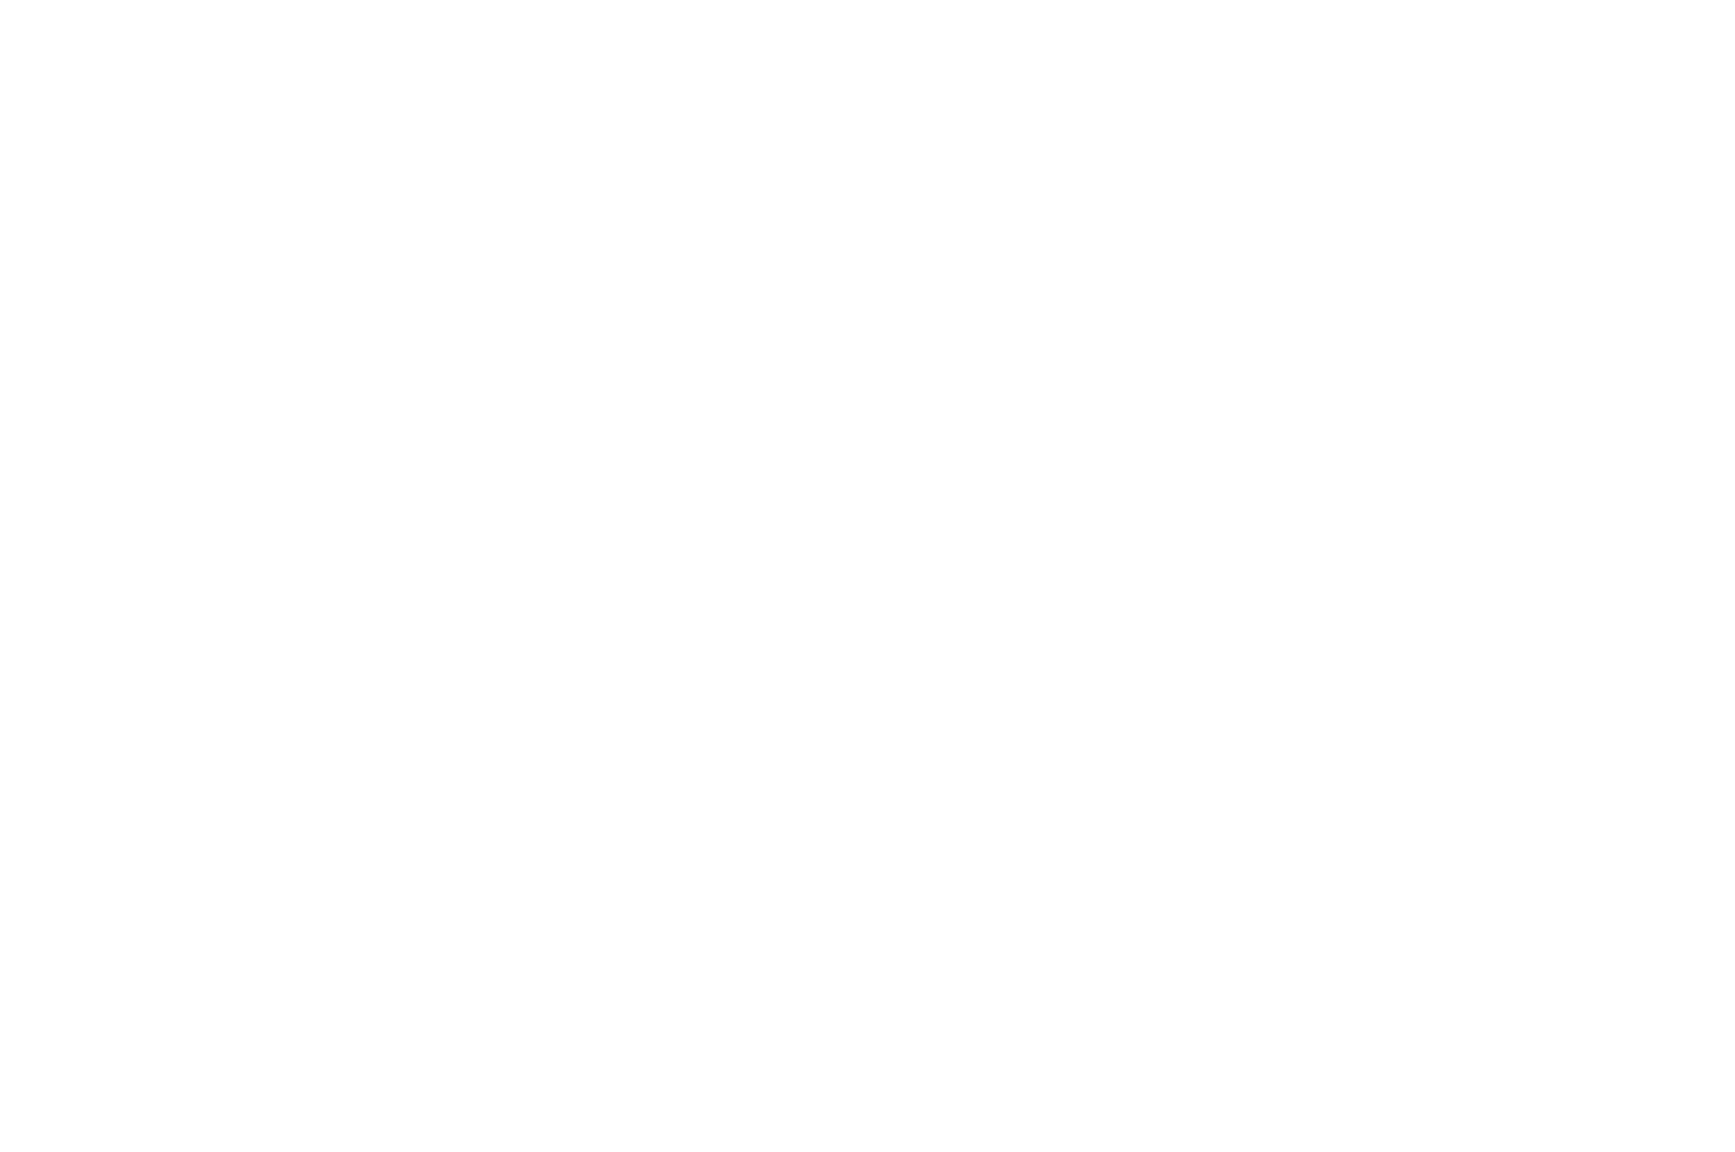 OFFICIAL SELECTION - NewFilmmakers New York 2017 - Letting Go.png